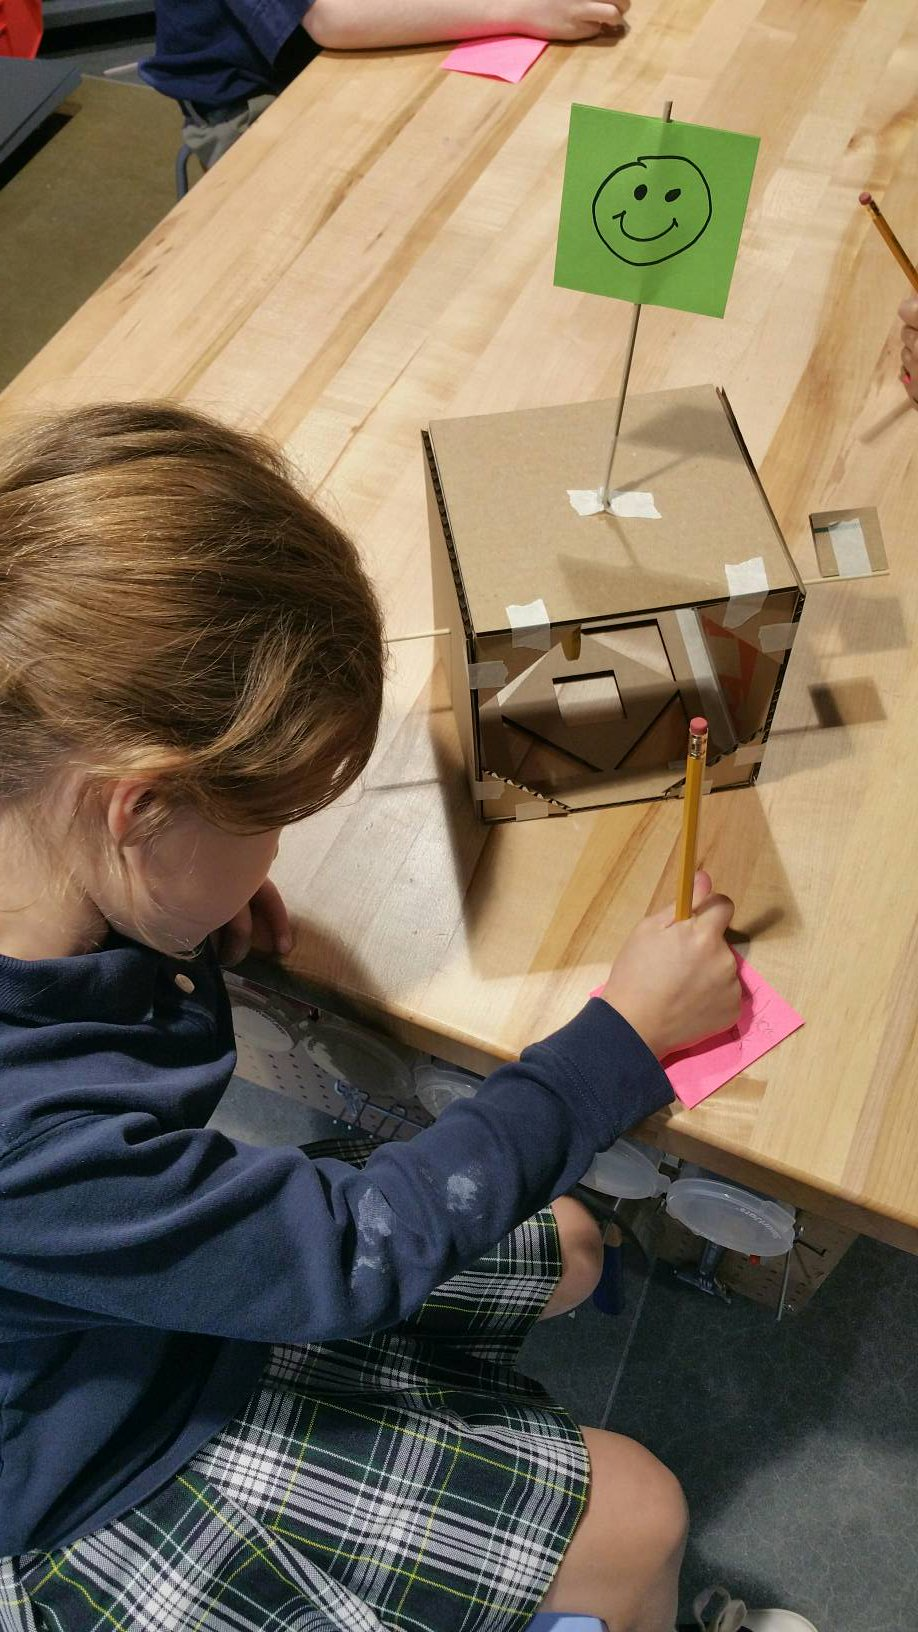 """""""We made an important observation that we want to share."""" #kidquote @AgencybyDesign's PPC #VTR helps #MVPSchool Gr1 look closely #MakerEd https://t.co/0eukdiCfgH"""